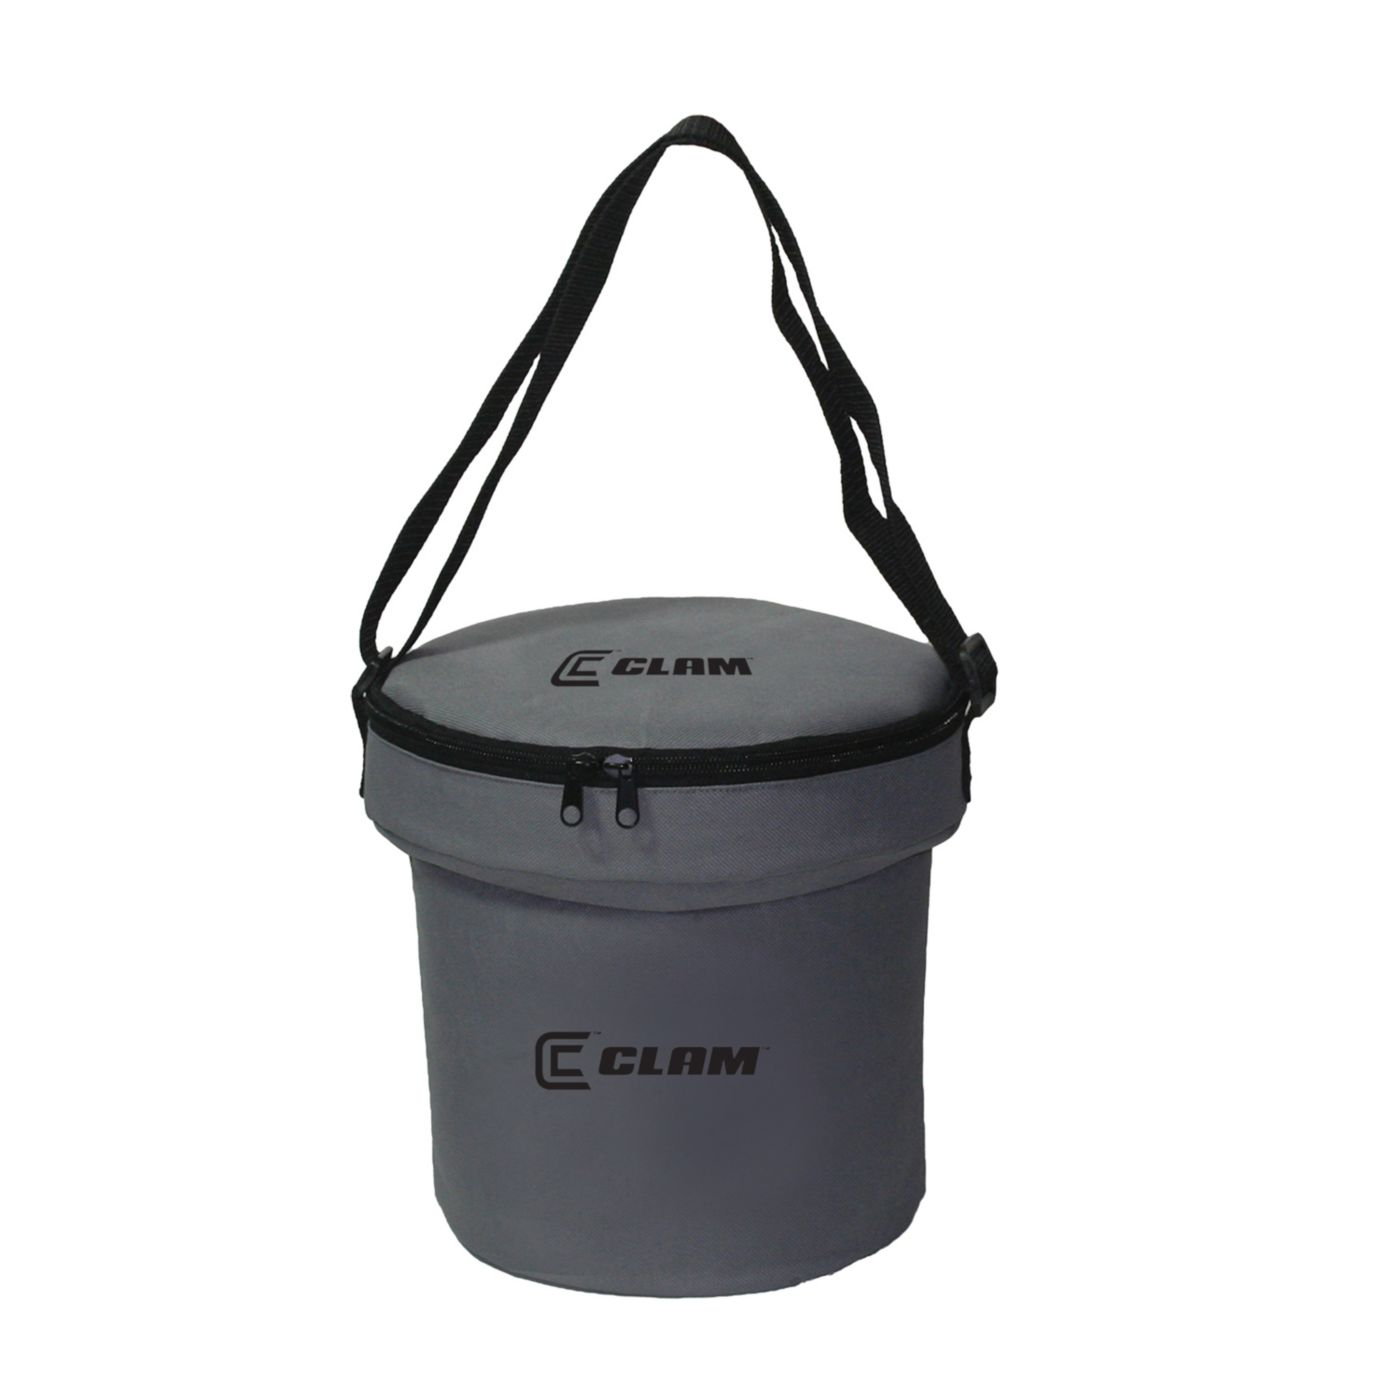 Clam 1/2 Gallon Bait Bucket With Insulated Carry Case